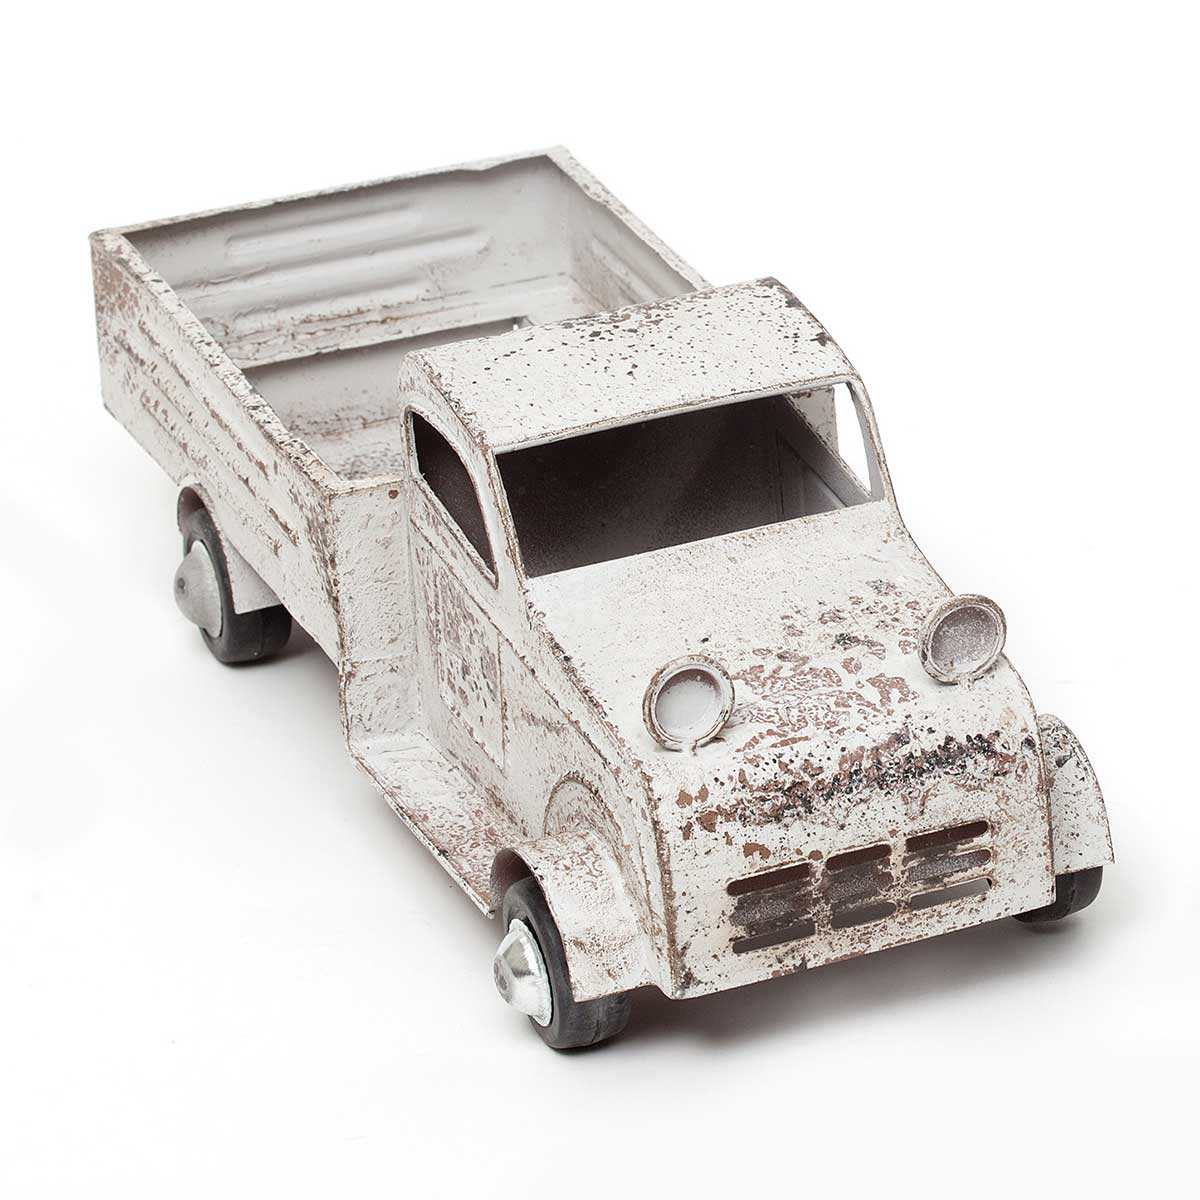 "TRUCK METAL 17.5""X6.25""5"" RUSTIC WHITE"